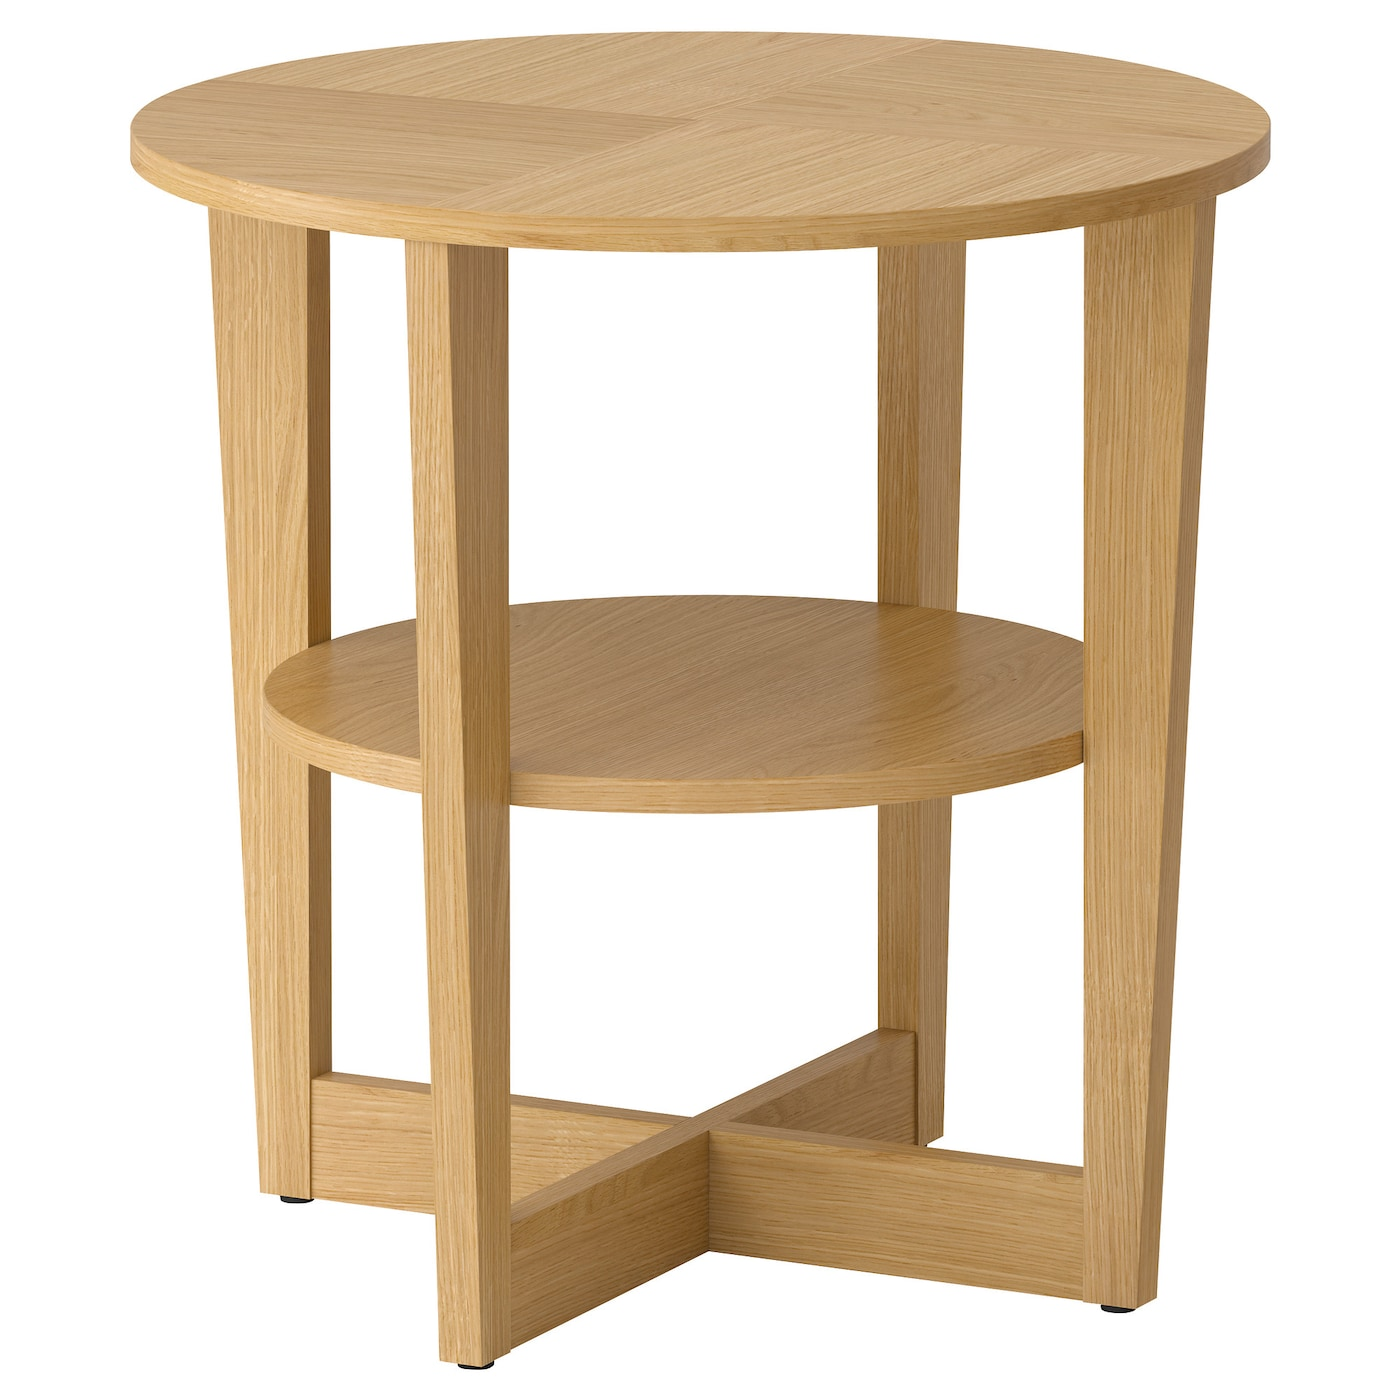 Ikea Vejmon Side Table The Veneered Surface Is Durable Stain Resistant And Easy To Keep